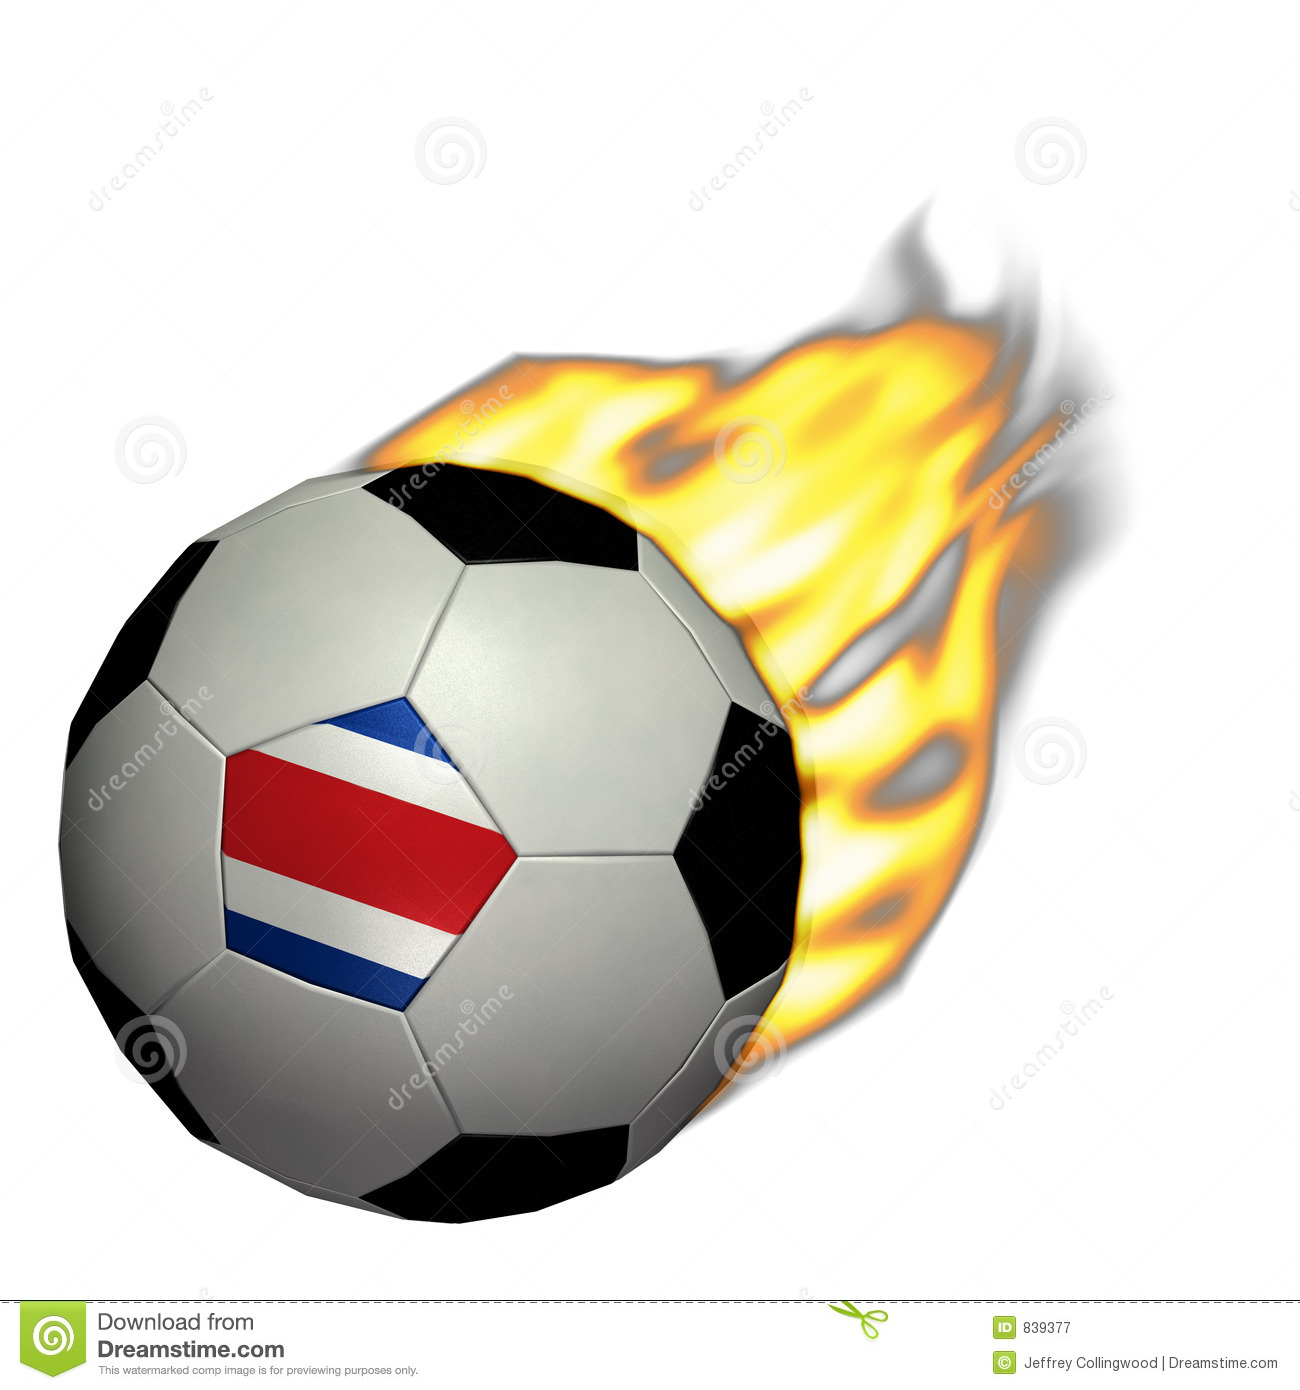 World Cup Soccer/Football - Costa Rica on Fire